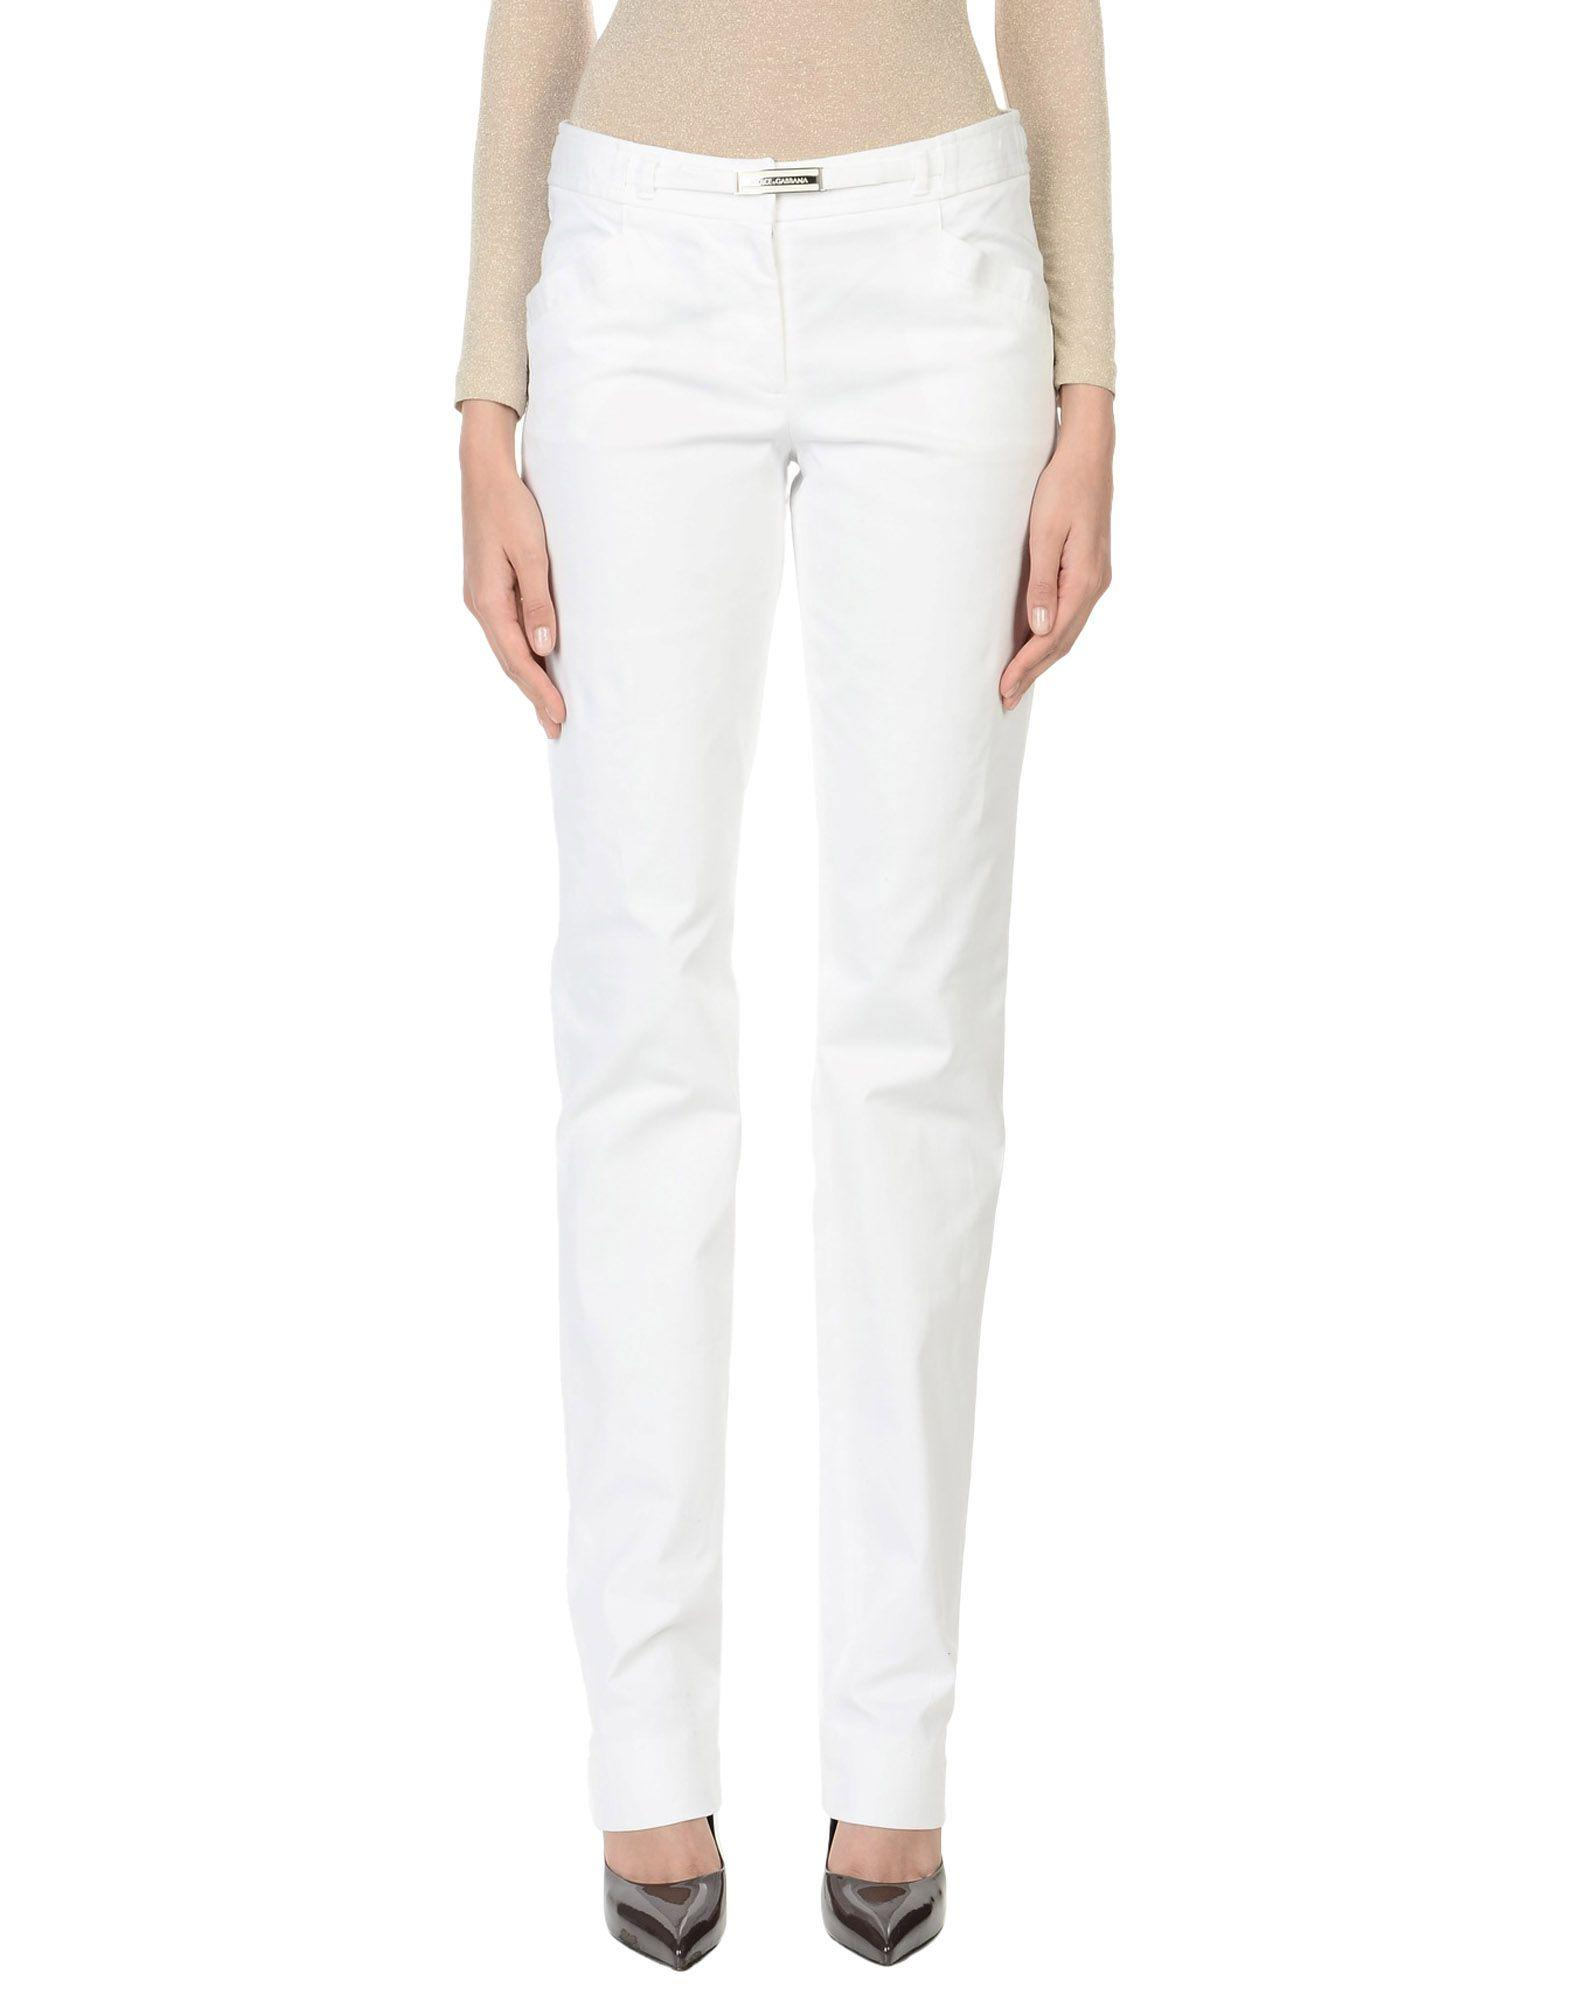 Dolce & Gabbana Casual Pants In Ivory